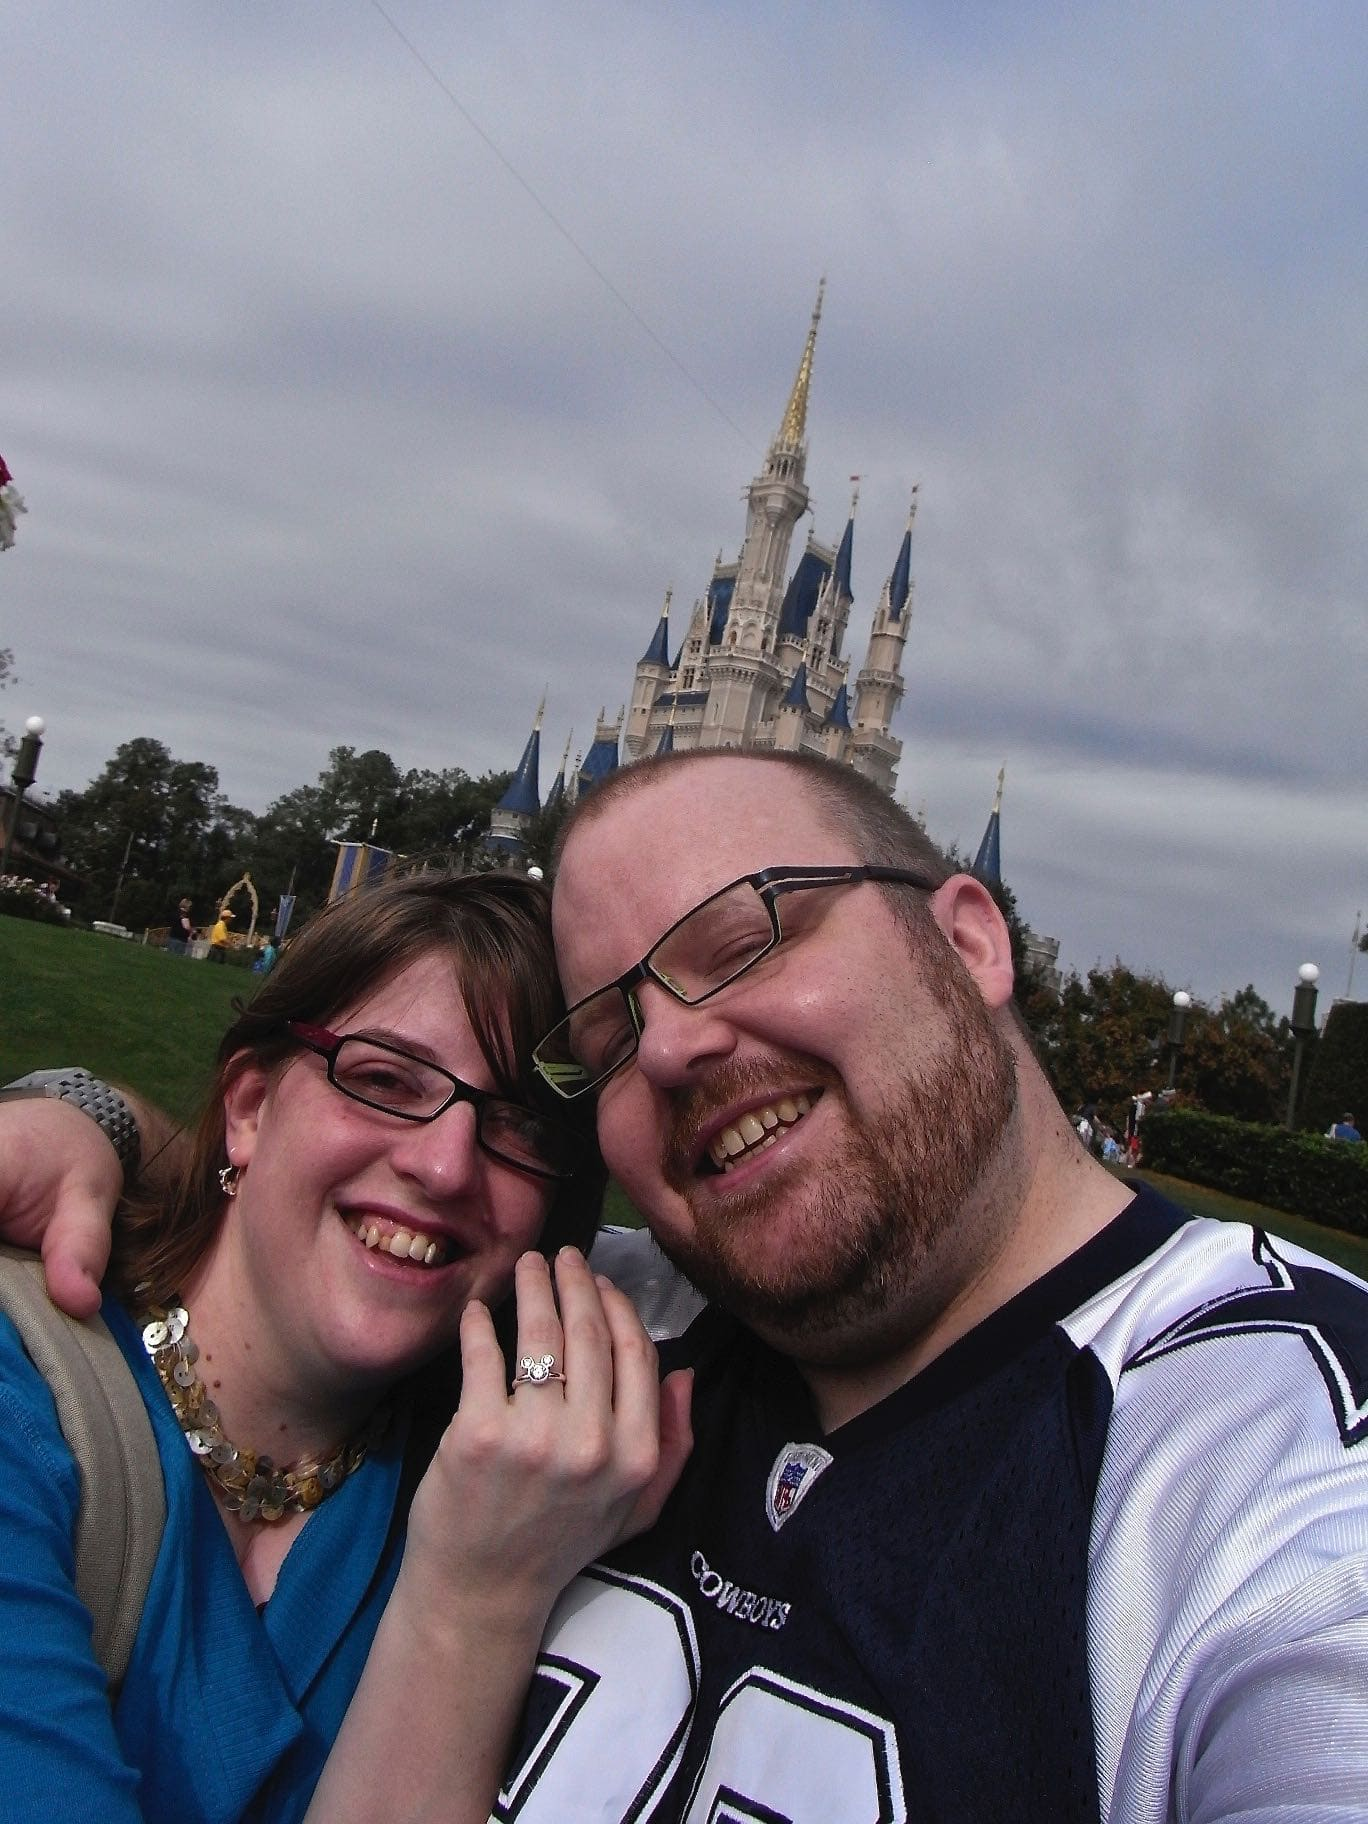 A selfie of a couple in front of Cinderellas castle in Disney where he has just proposed